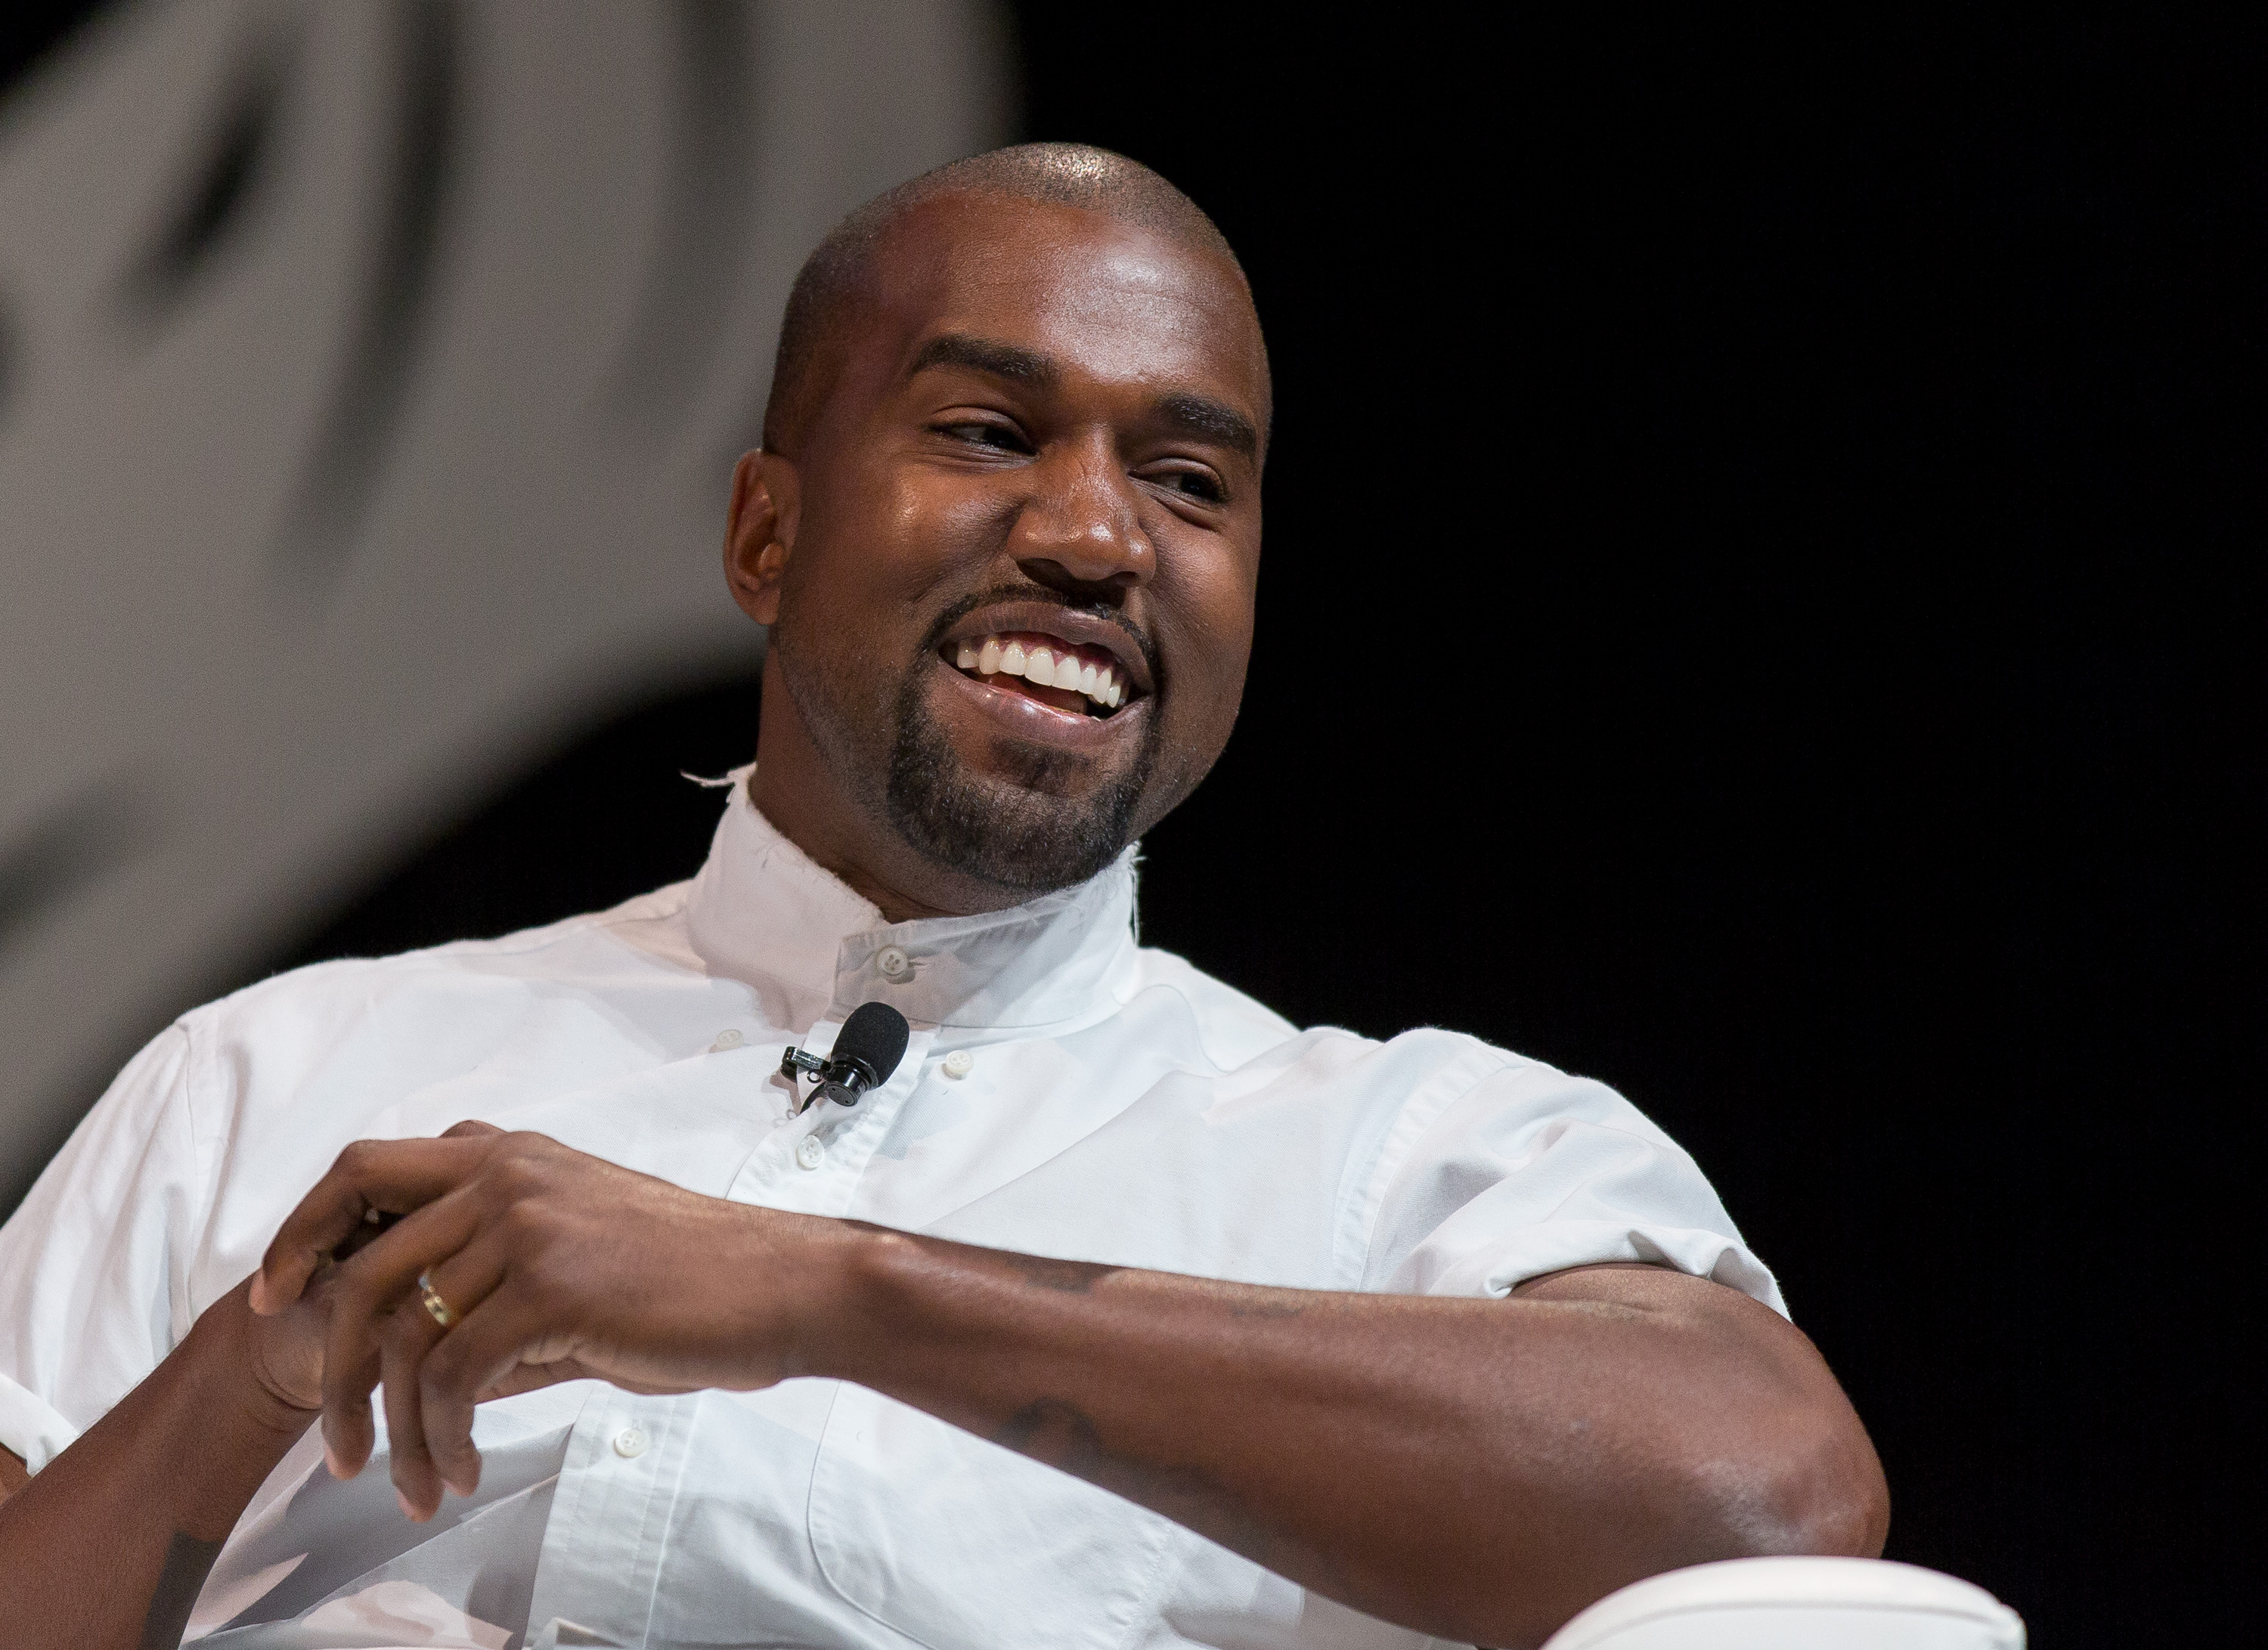 Kanye West attends the 2014 Cannes Lions on June 17, 2014 in Cannes, France.